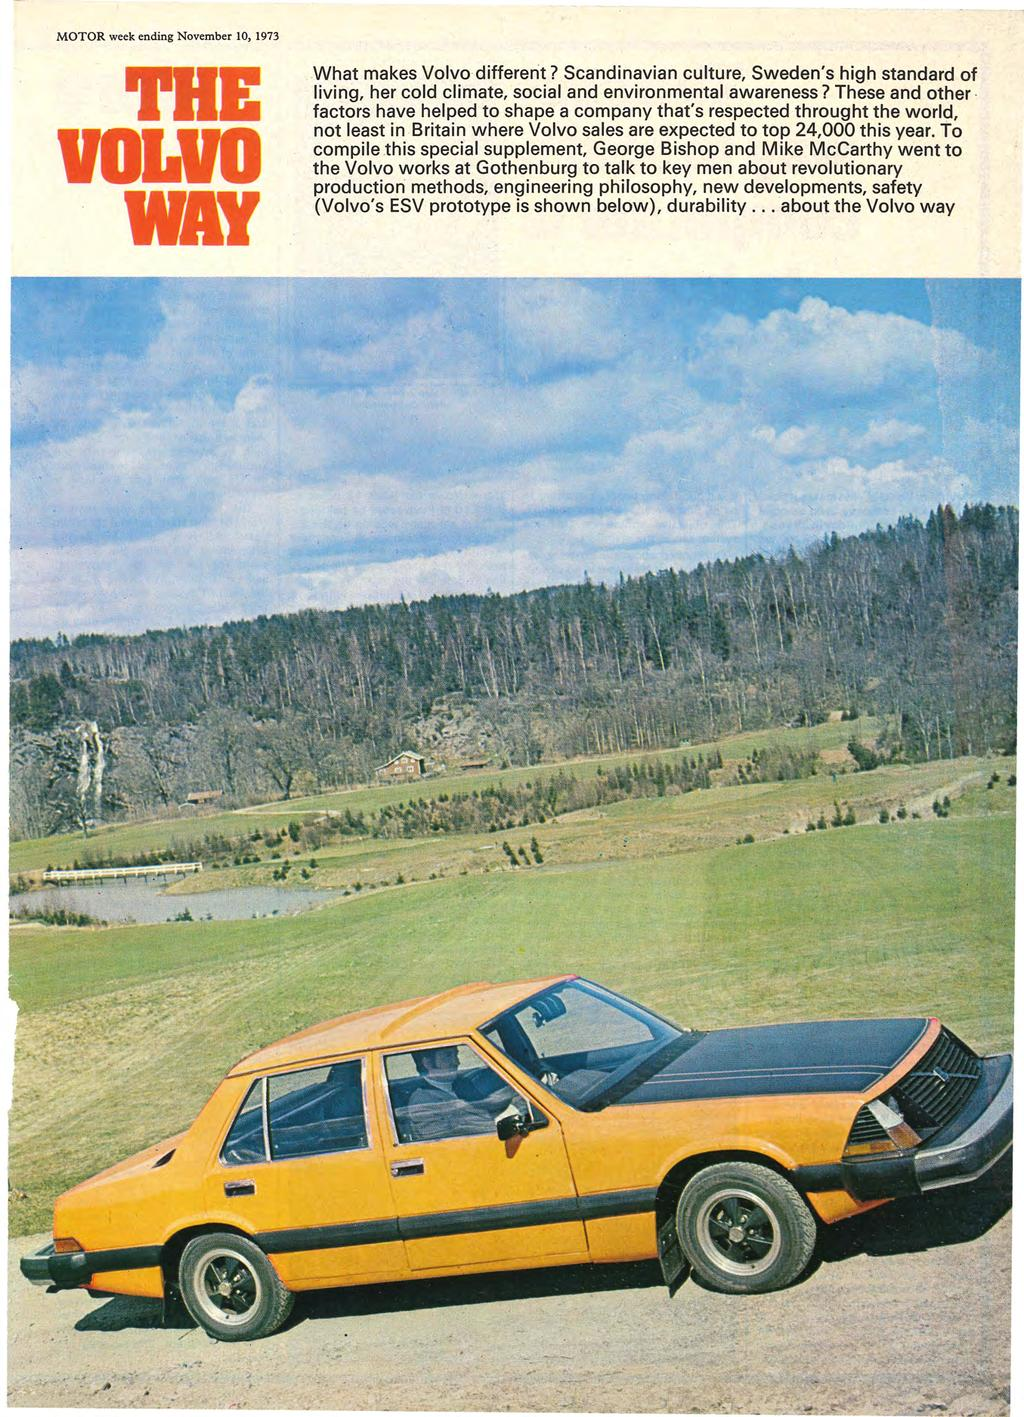 MOTOR week ending November 10, 1973 What makes Volvo different? Scandinavian culture, Sweden's high standard of living, her cold climate, social and environmental awareness?